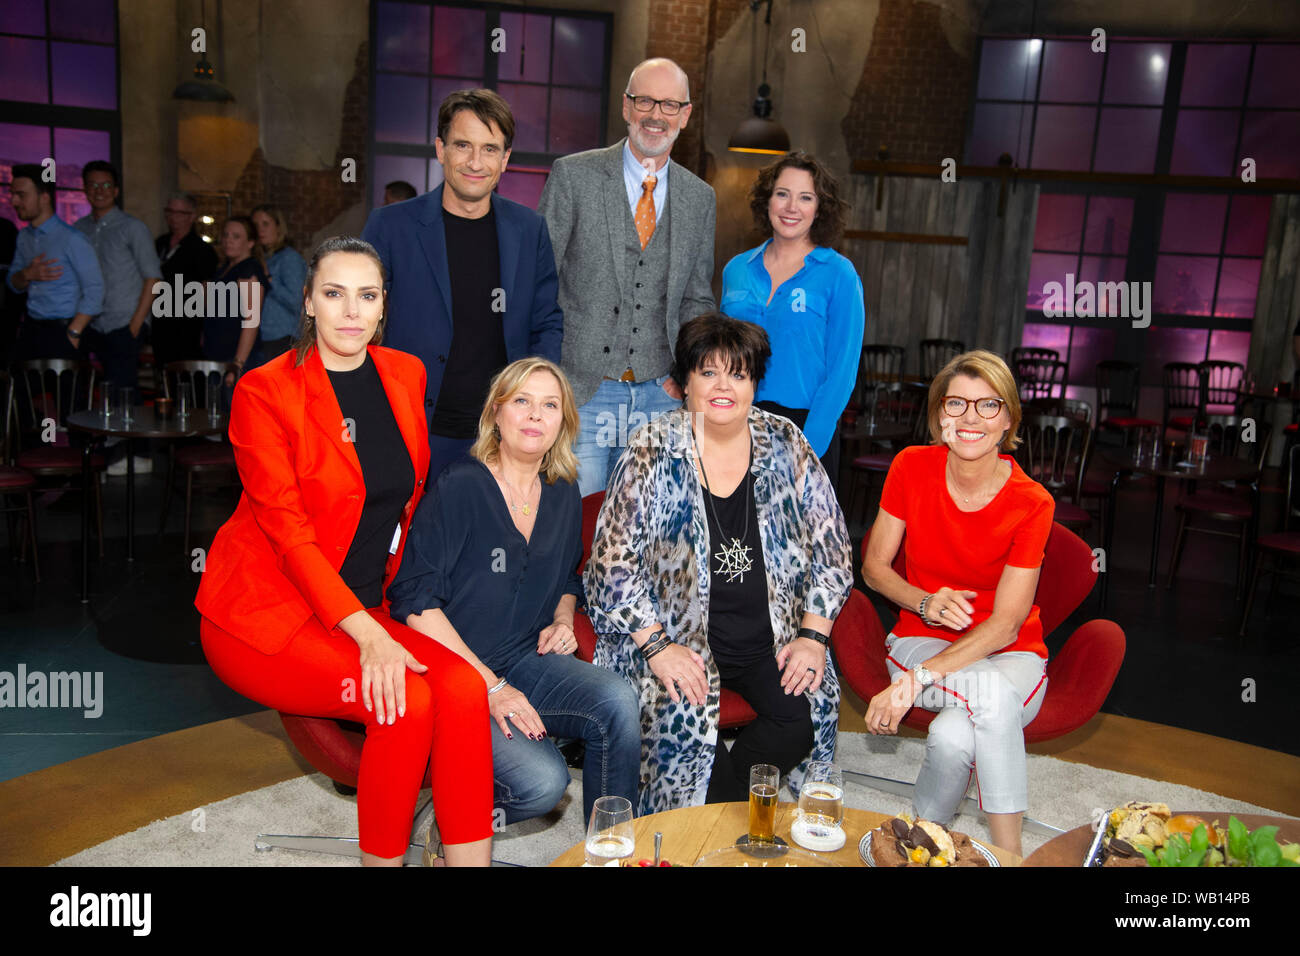 """Cologne, Deutschland. 22nd Aug, 2019. Back row from left: Oliver MOMMSEN, Germany, actor, Peter WOHLLEBEN, Germany, Foerster, author, environmentalist, Ildiko (Ildikó) of KUERTHY, Kurthy, Germany, author, writer, front row from left: Esther SEDLACZEK, Germany, presenter, Sports reporter, Katharina BOEHM, Bohm, Germany, actress, Ingrid KUEHNE, Kuhne, Germany, comedian, comedienne, presenter Bettina BOETTINGER, guest on the program """"Koelner Treff"""" on WDR television, 22.08.2019.   usage worldwide Credit: dpa/Alamy Live News Stock Photo"""